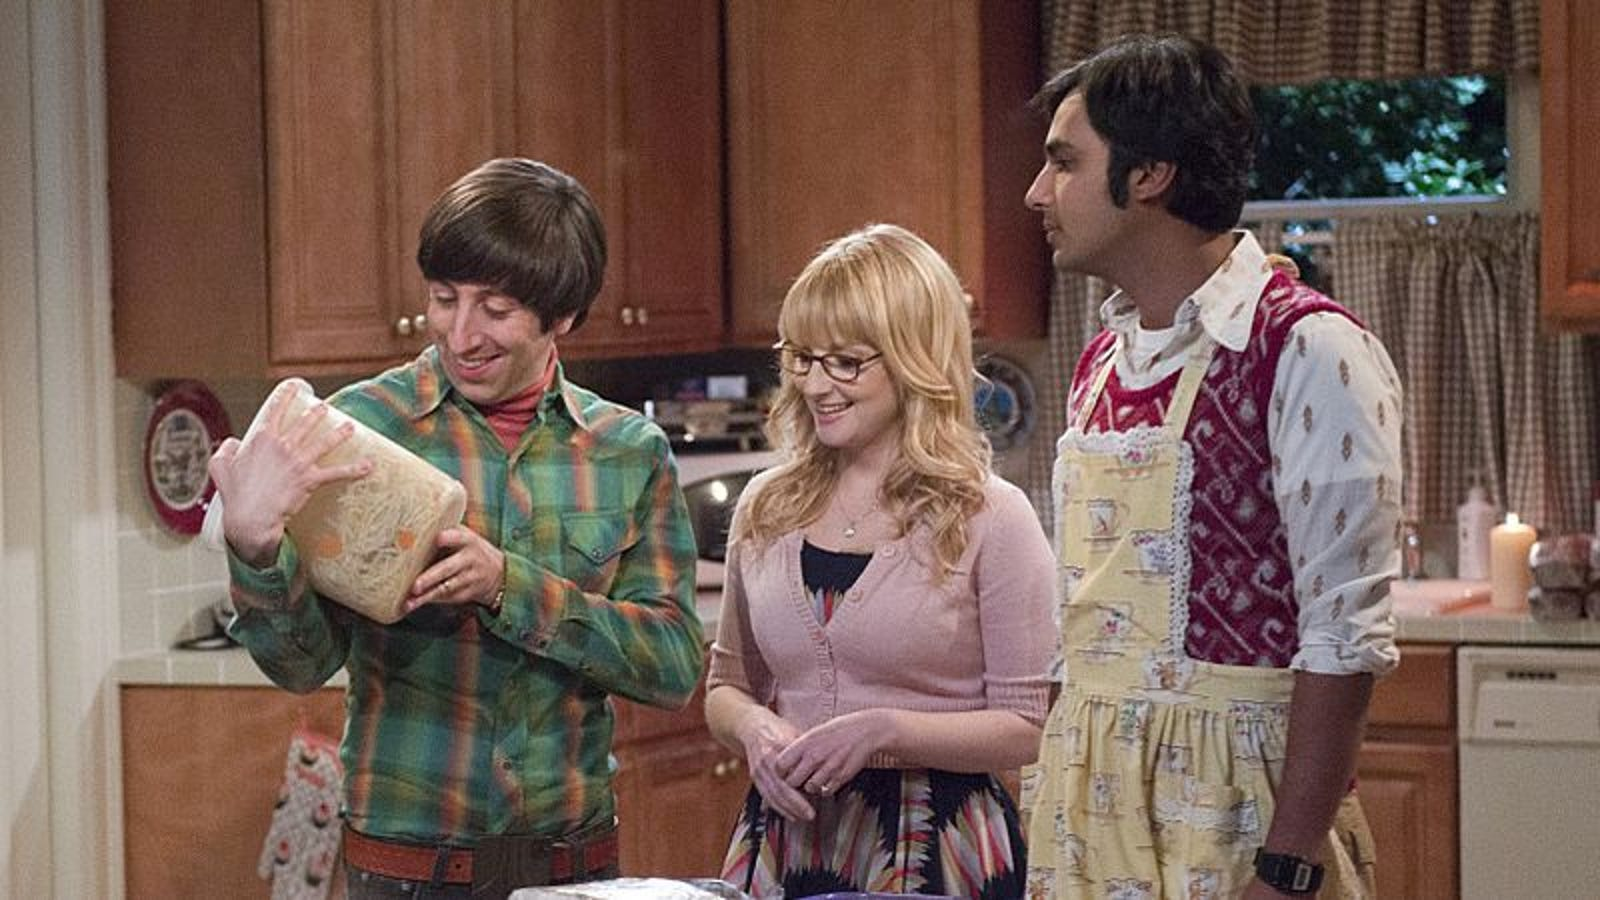 The Big Bang Theory The Leftover Thermalization